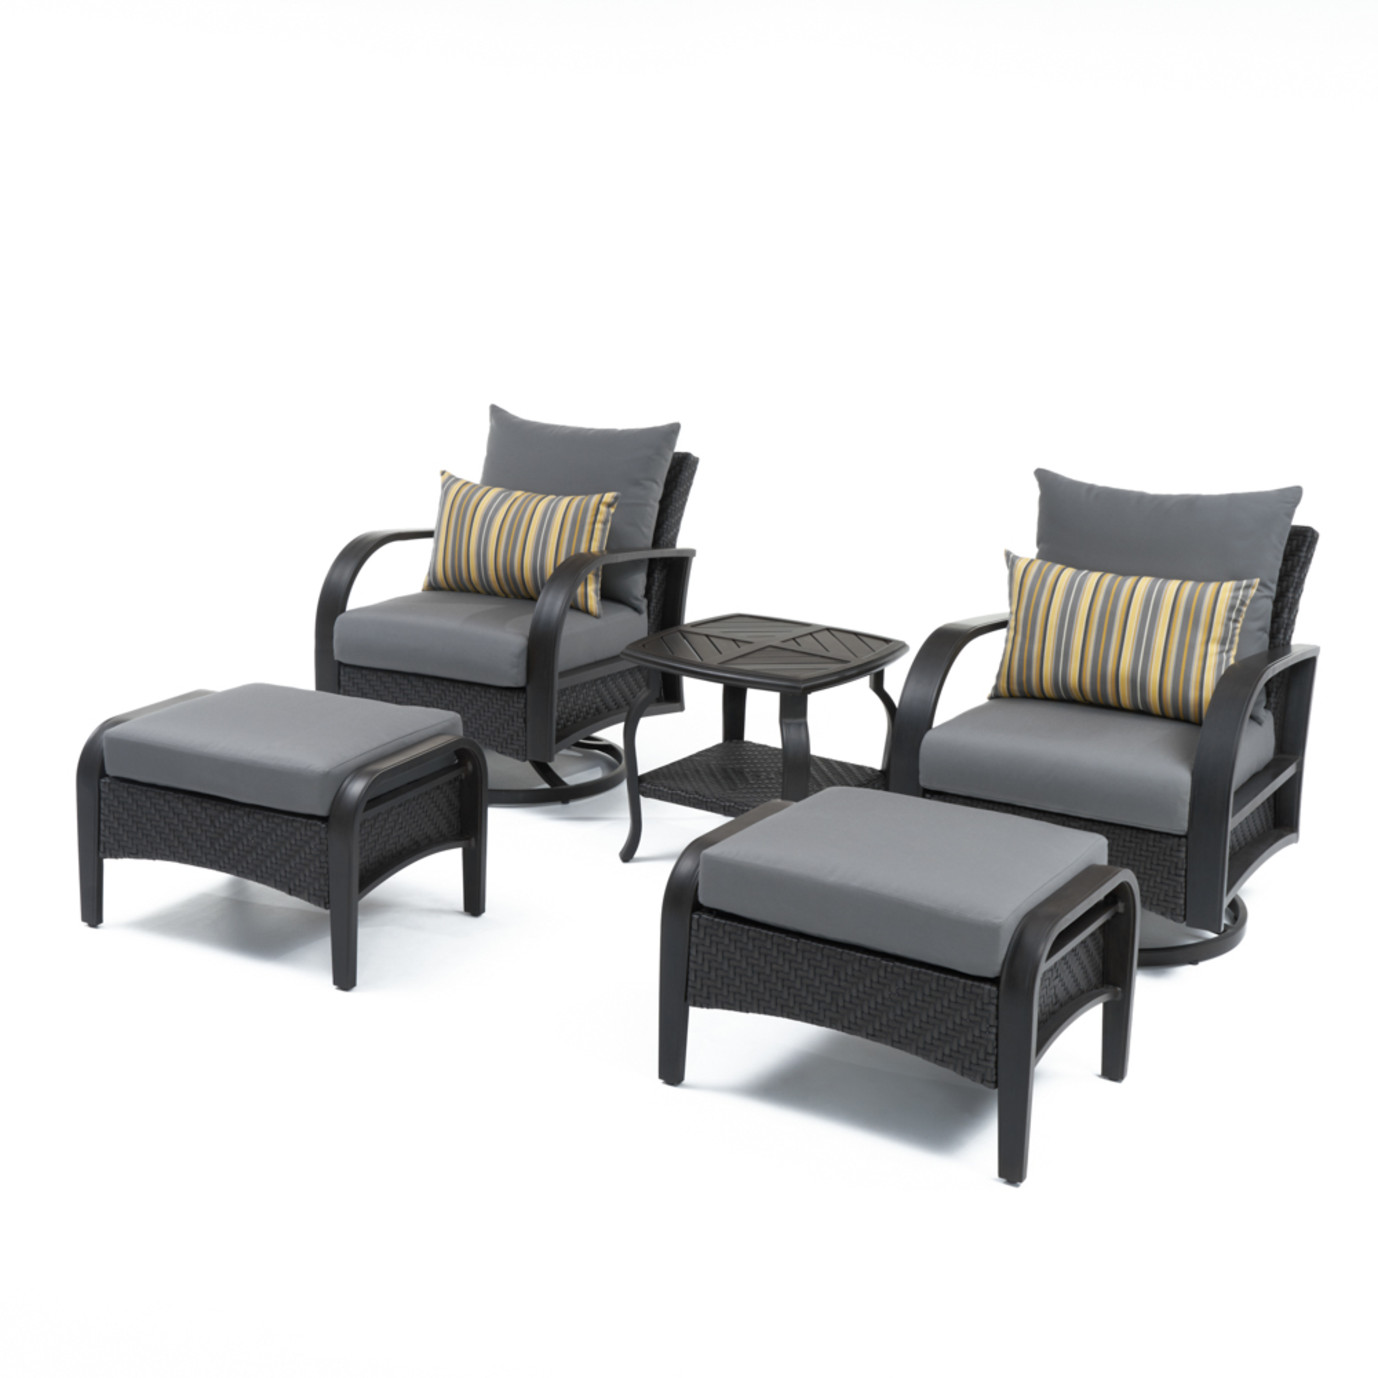 Barcelo™ 5pc Motion Club & Ottoman Set - Charcoal Grey